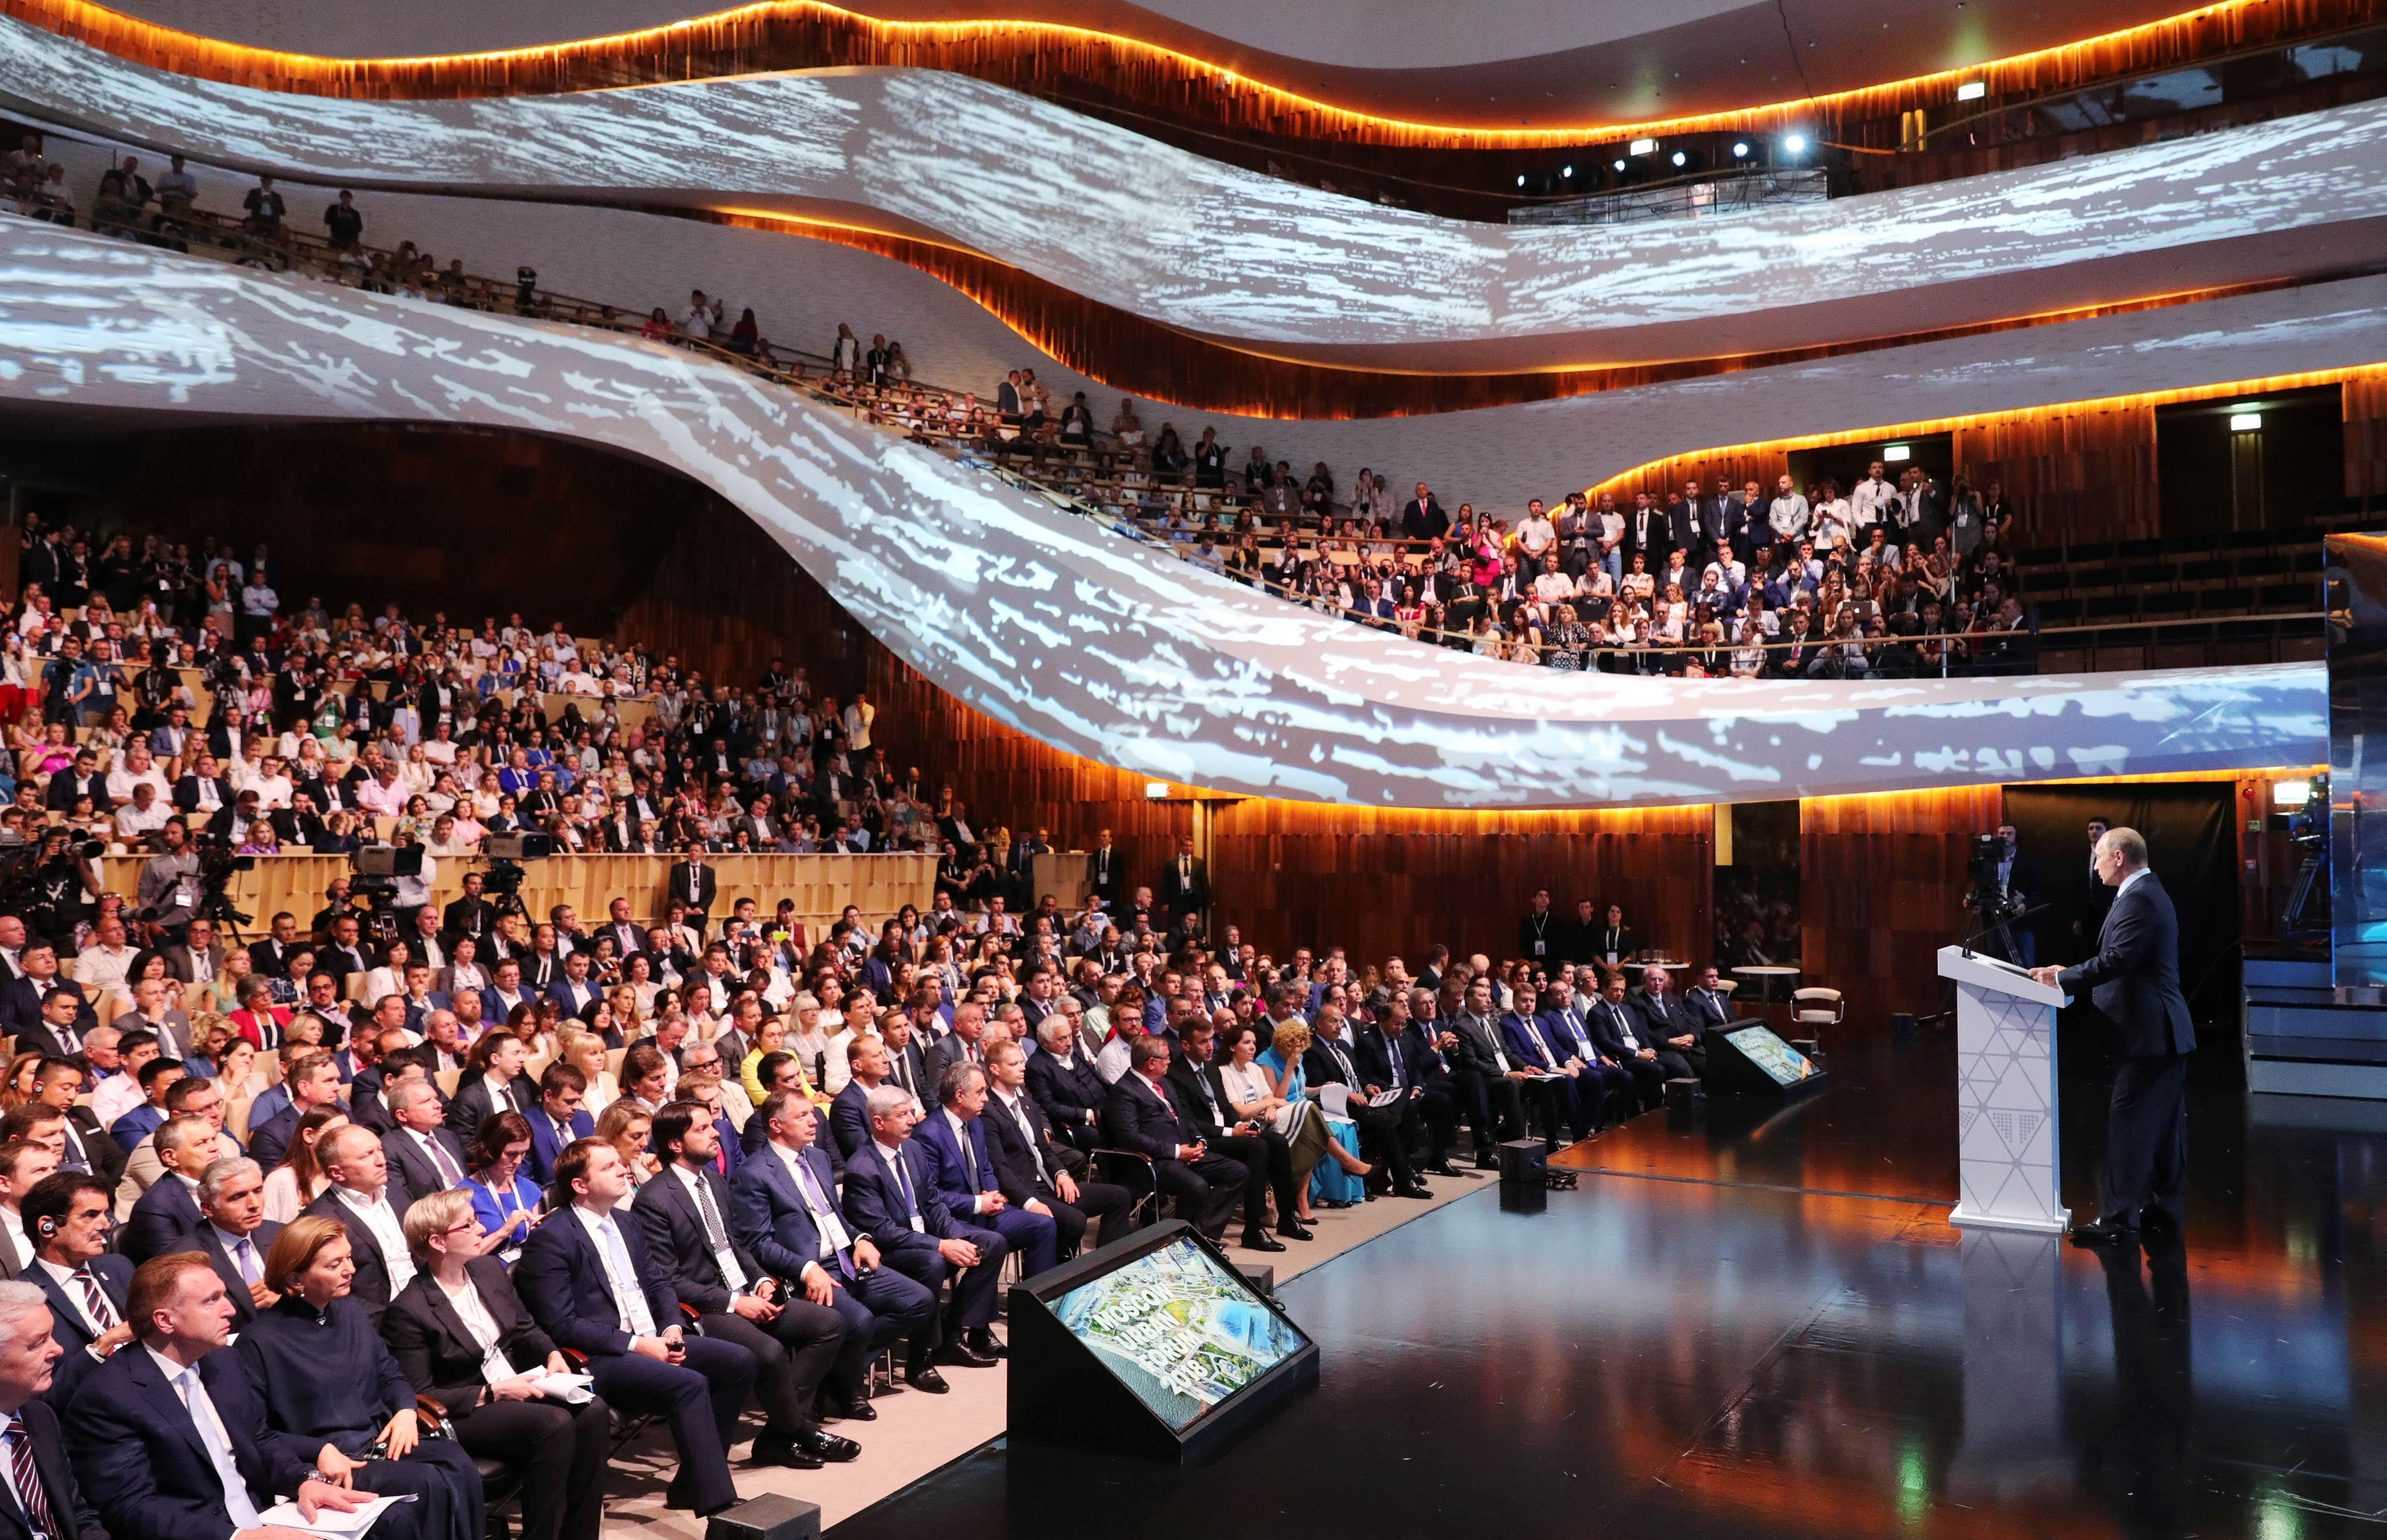 Participants listen to Russia's President Vladimir Putin during a session of Moscow Urban Forum 2018 at the Concert Hall of Zaryadye Park in Moscow, Russia July 18, 2018. Sputnik/Mikhail Klimentyev/Kremlin via REUTERS  ATTENTION EDITORS - THIS IMAGE WAS PROVIDED BY A THIRD PARTY. - RC142E176000